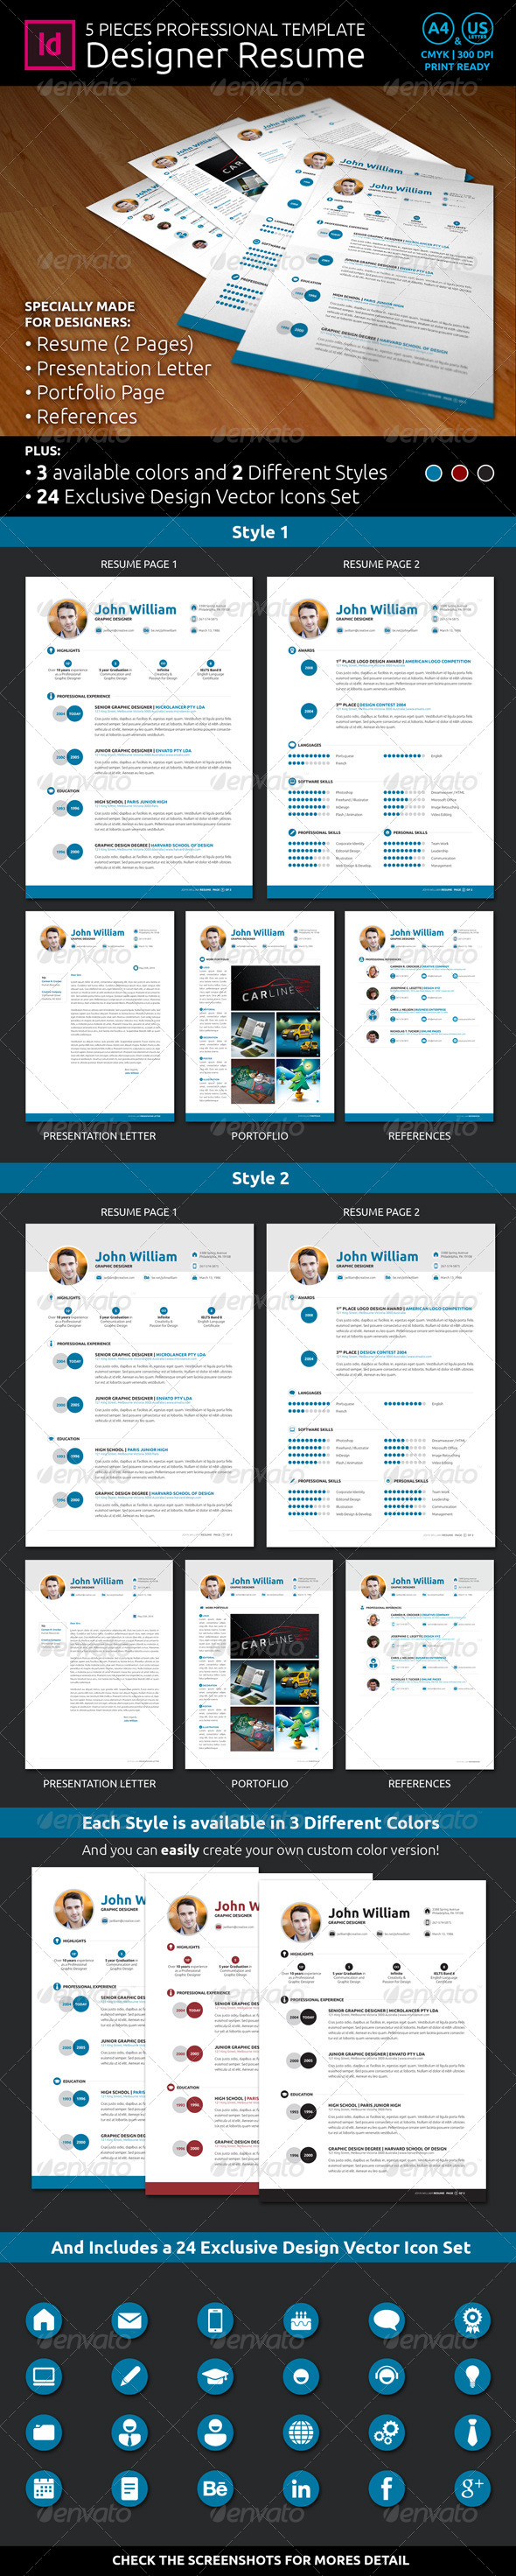 GraphicRiver Designer Resume CV Template 7822411